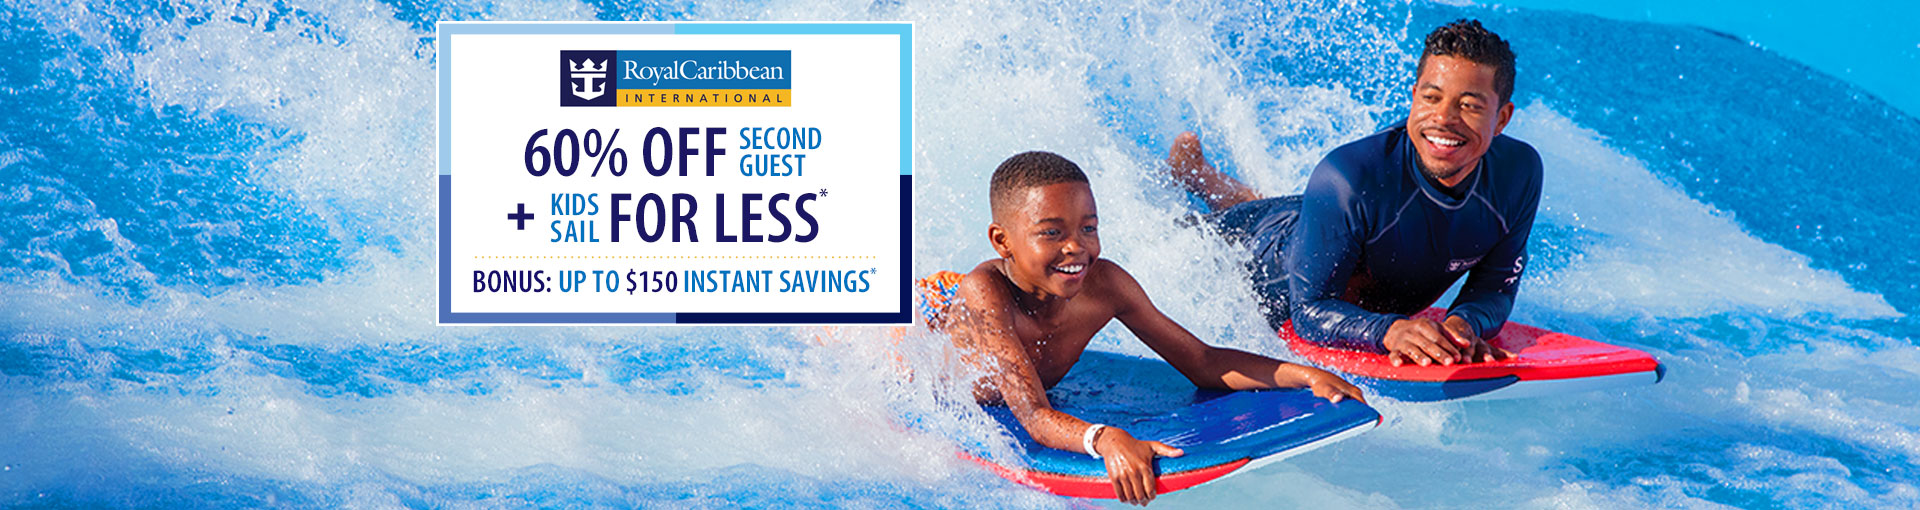 Royal Caribbean - 60% Off 2nd Guest and Kids Sail for Less